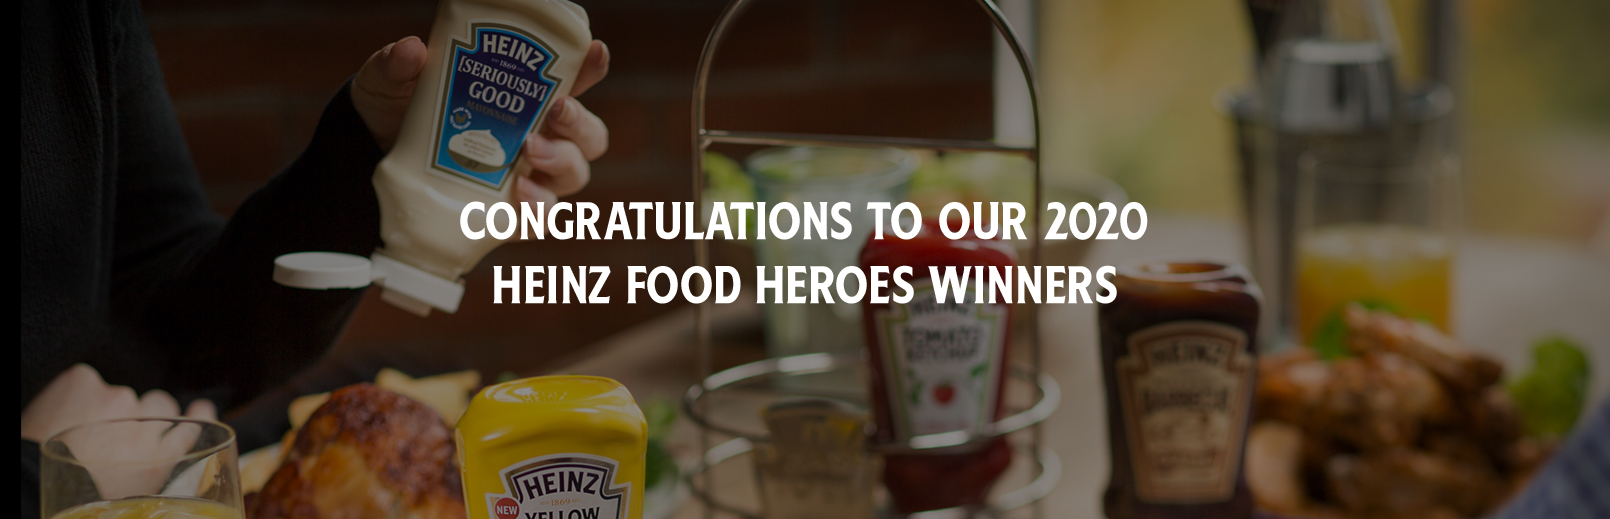 CONGRATULATIONS TO OUR 2020 HEINZ FOOD HEROES WINNERS